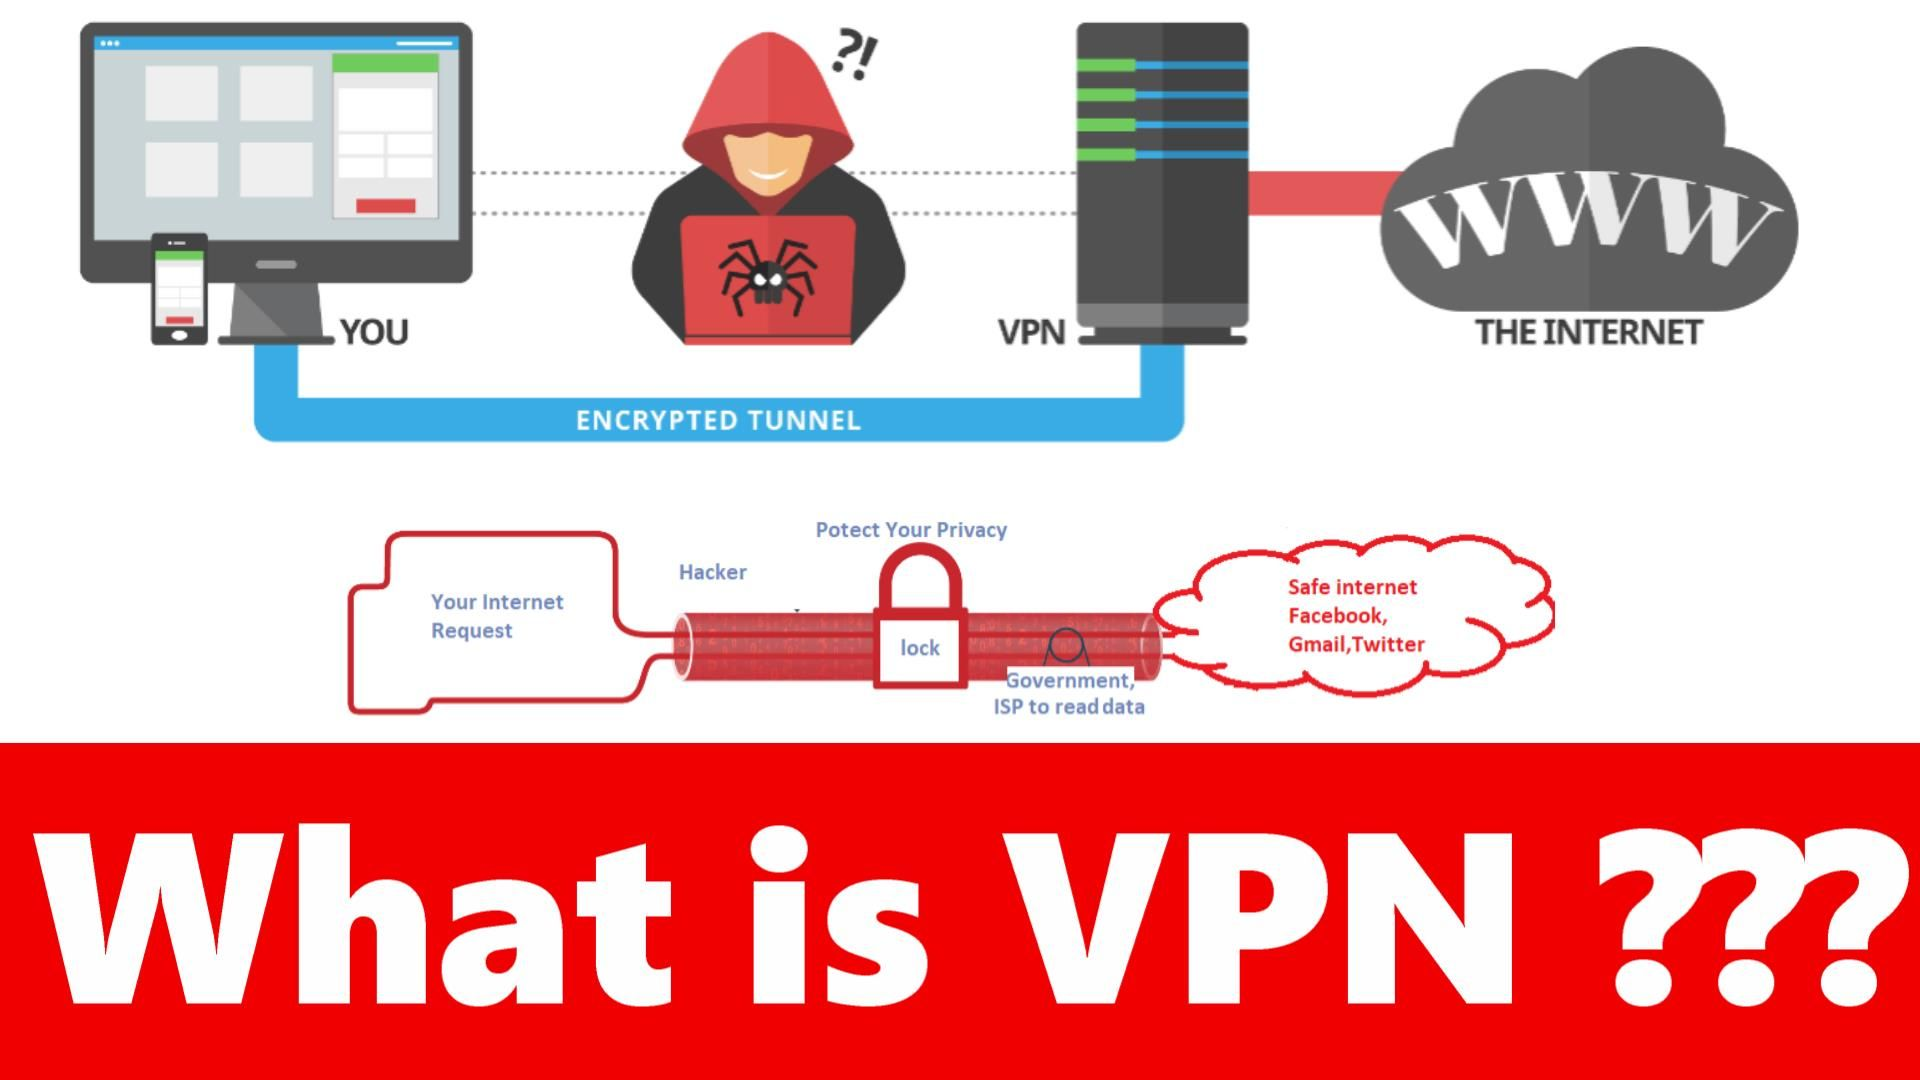 2bb7b75180737a9ddb0e02e61f4c67ba - The Vpn Connection Between Your Computer